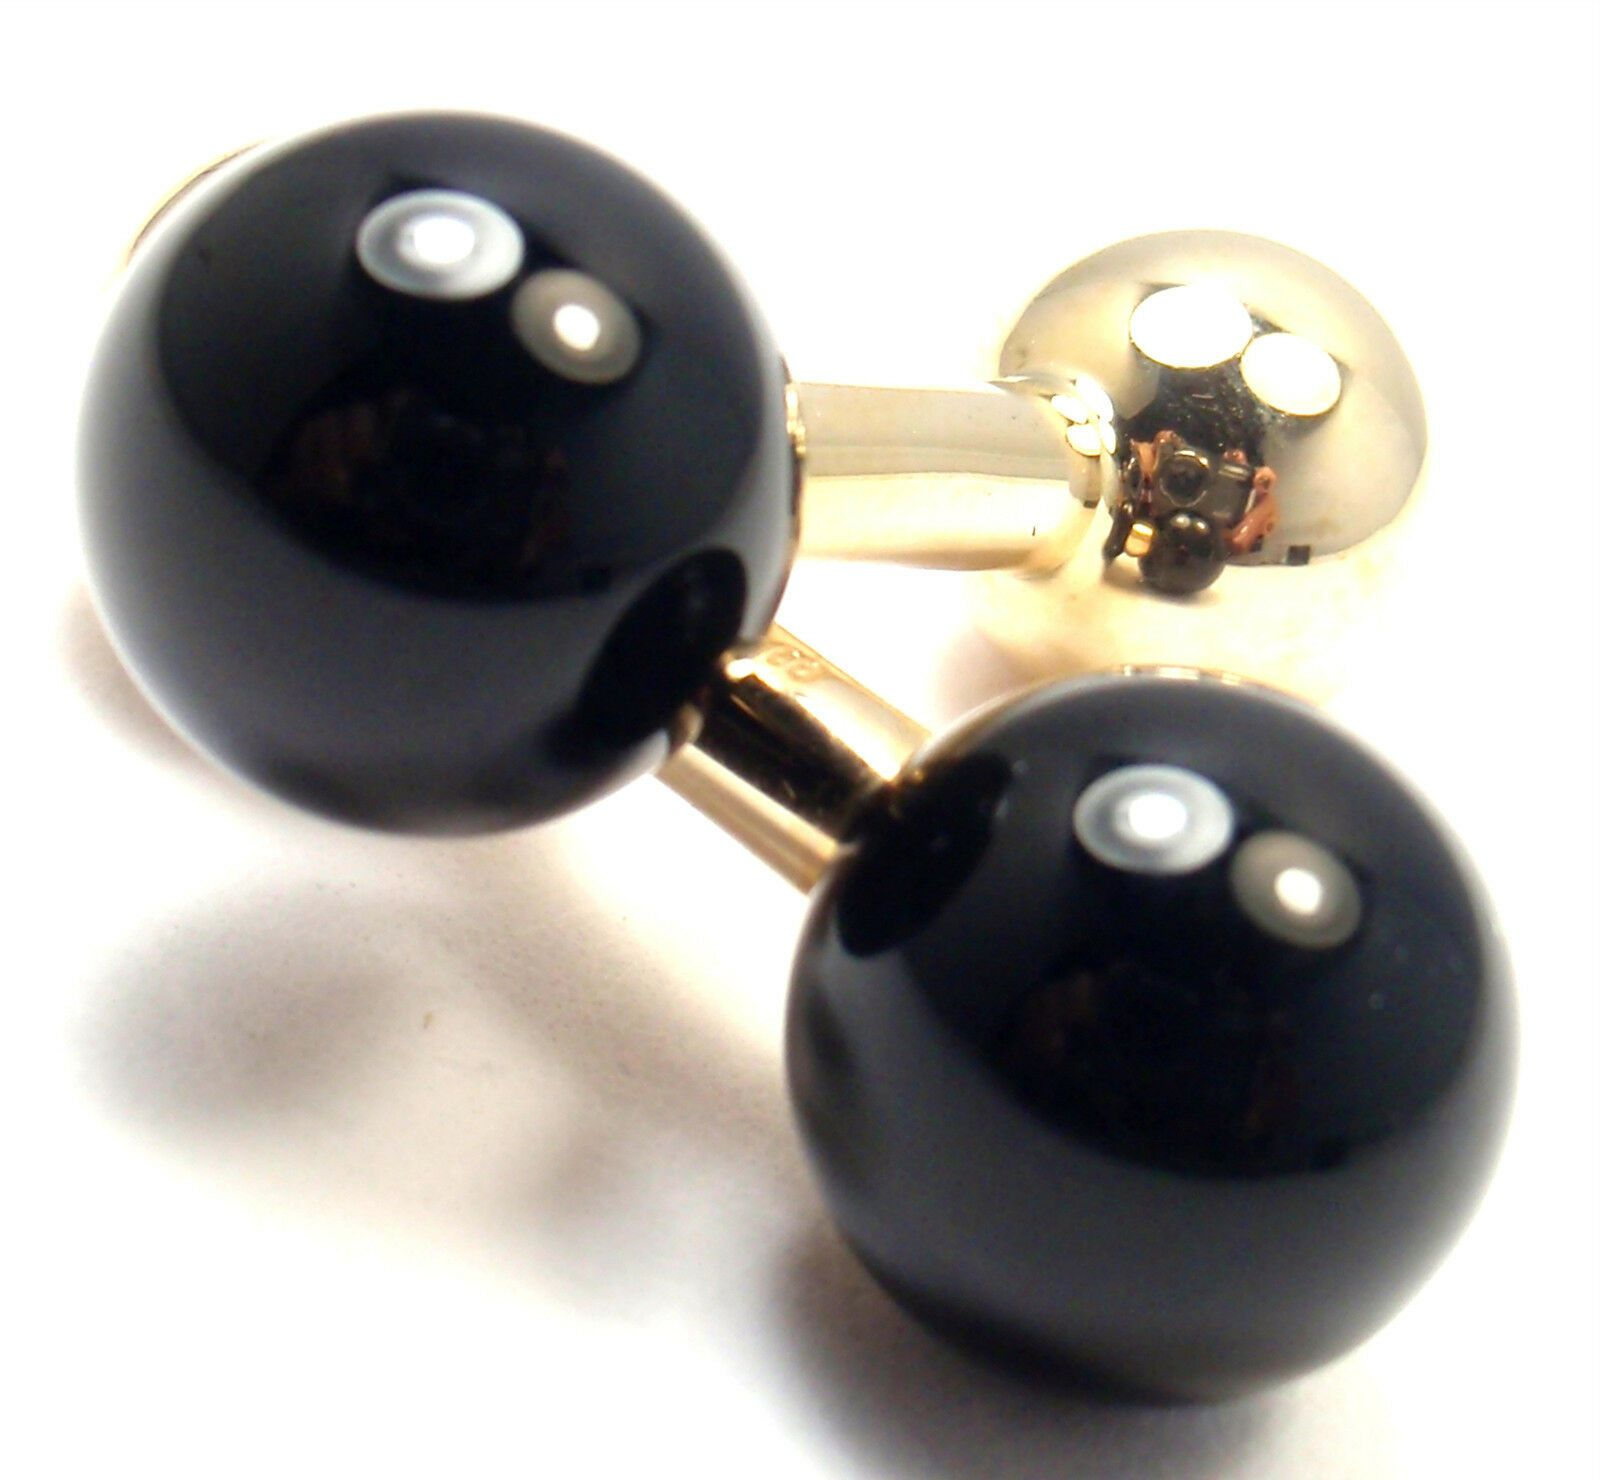 Authentic! Vintage Tiffany & Co 14k Yellow Gold Black Onyx Cufflinks